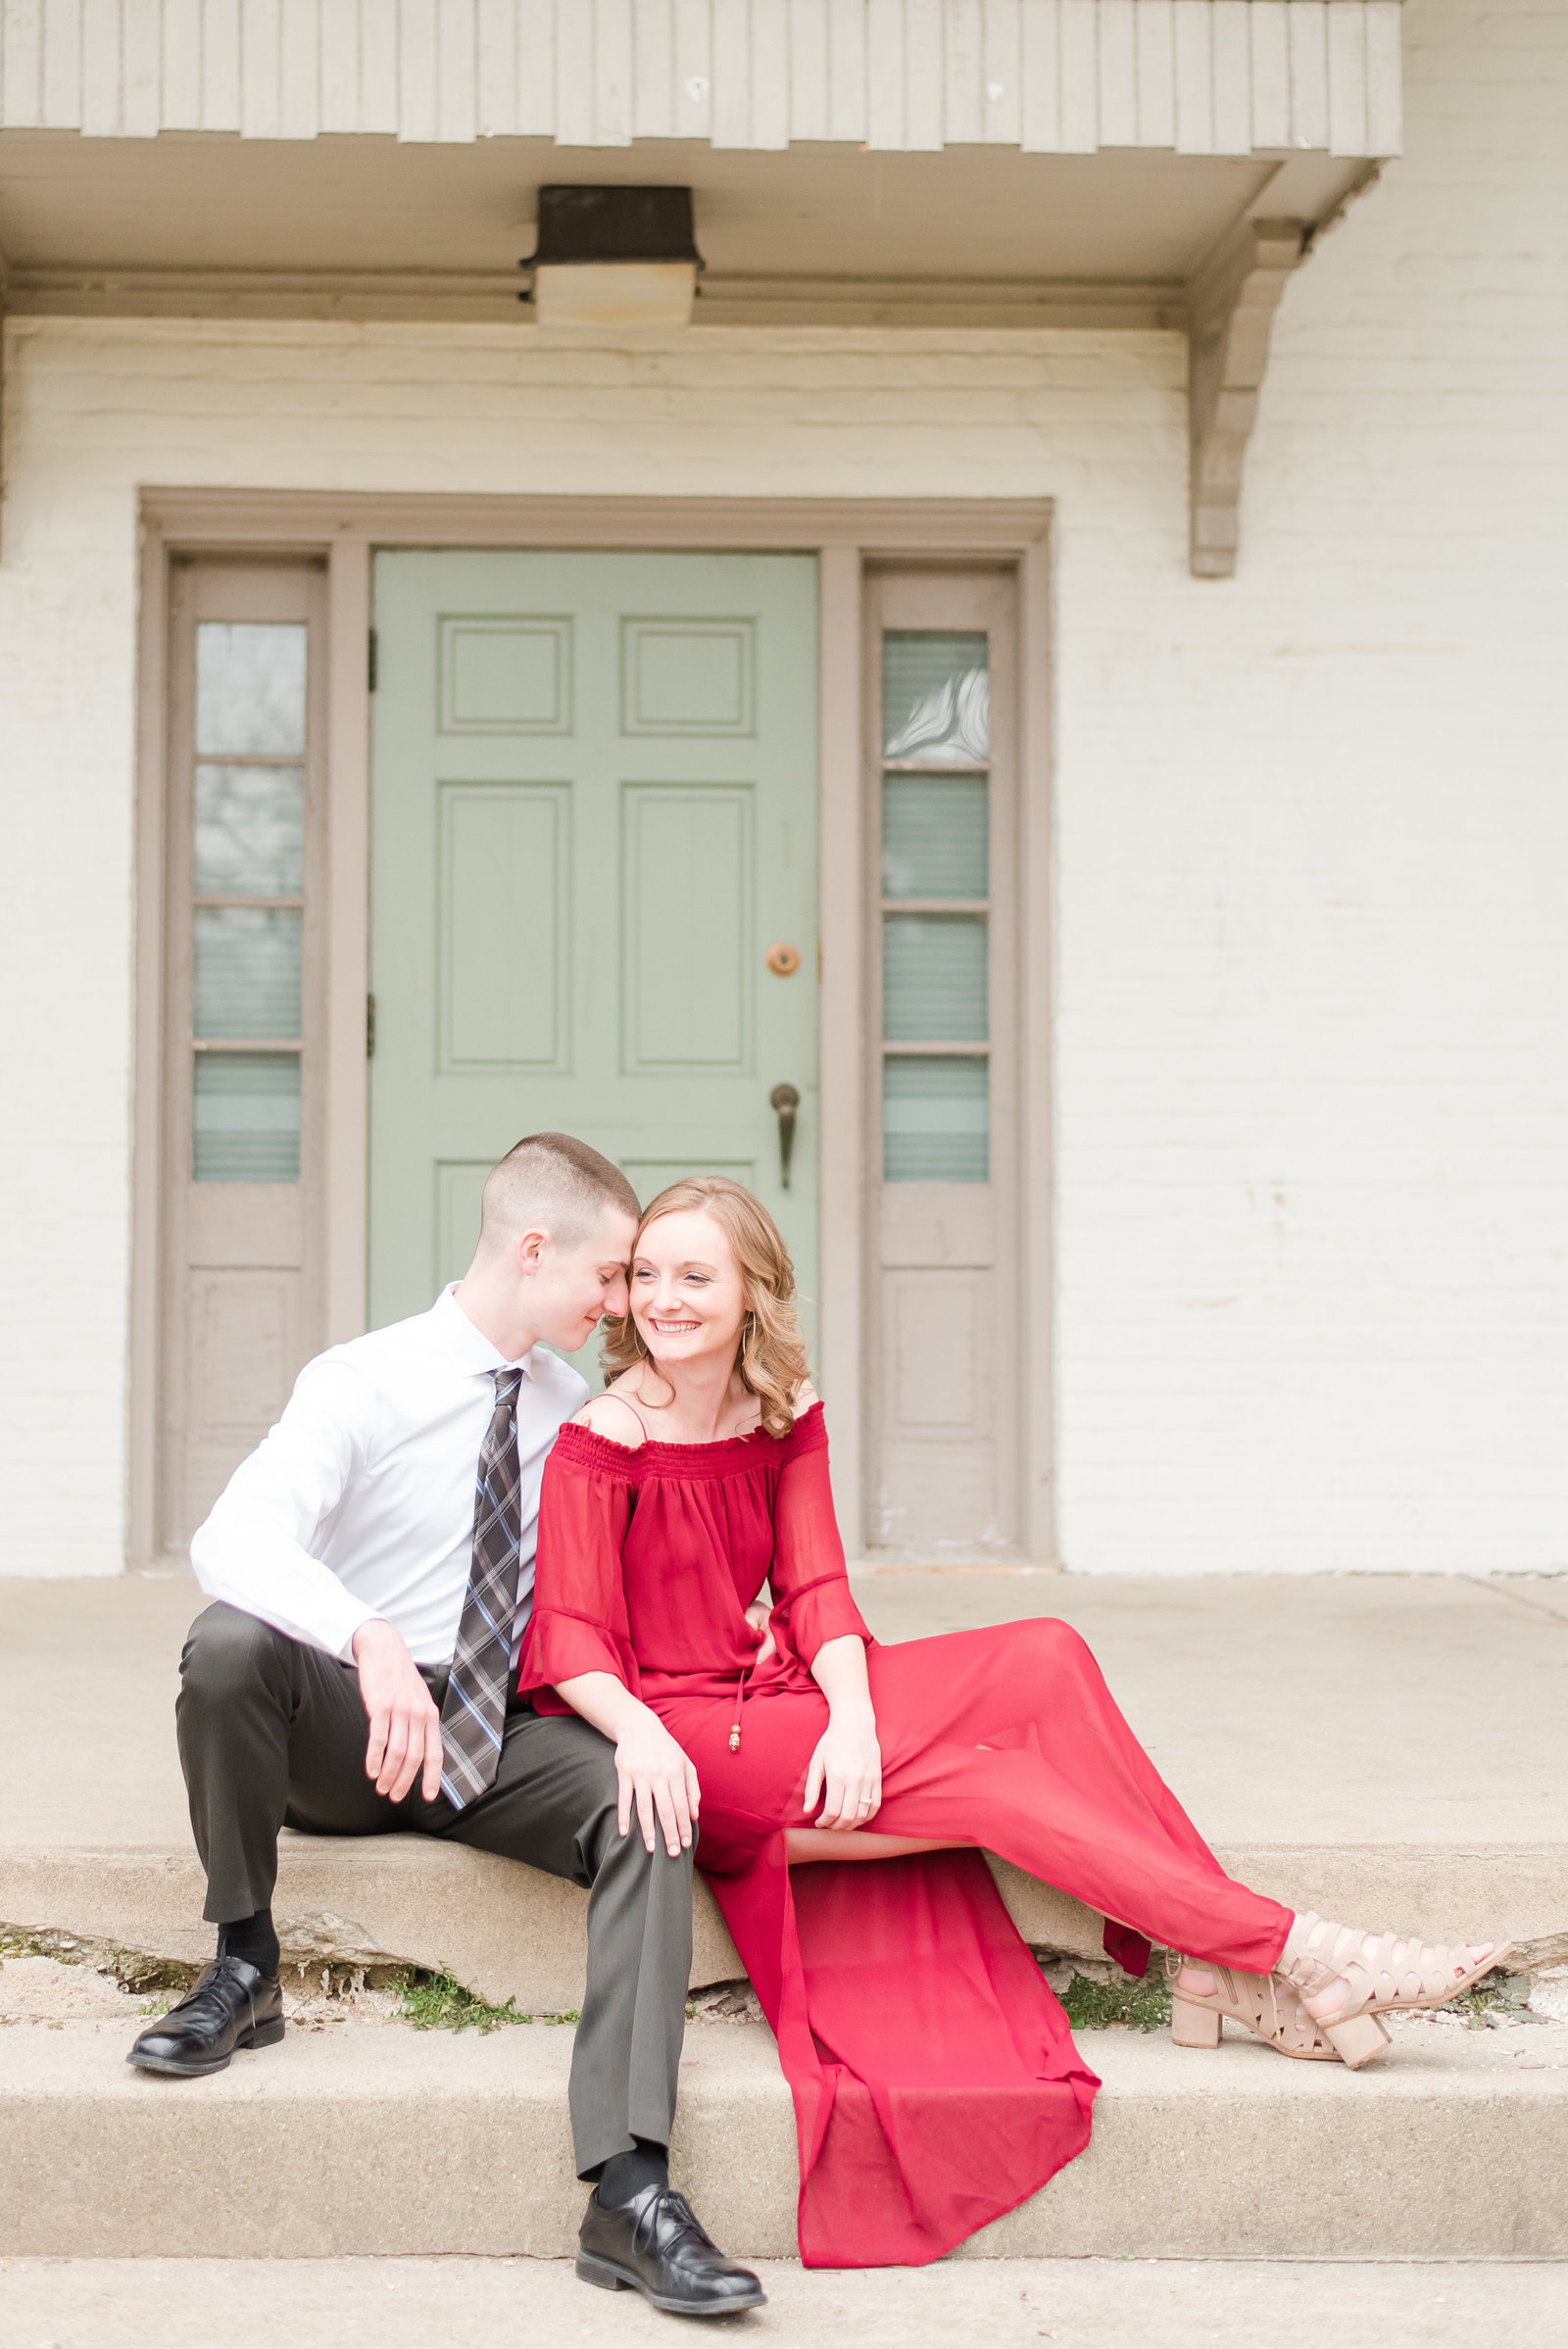 Spring Engagement Session at Glenns Valley Engagement Session